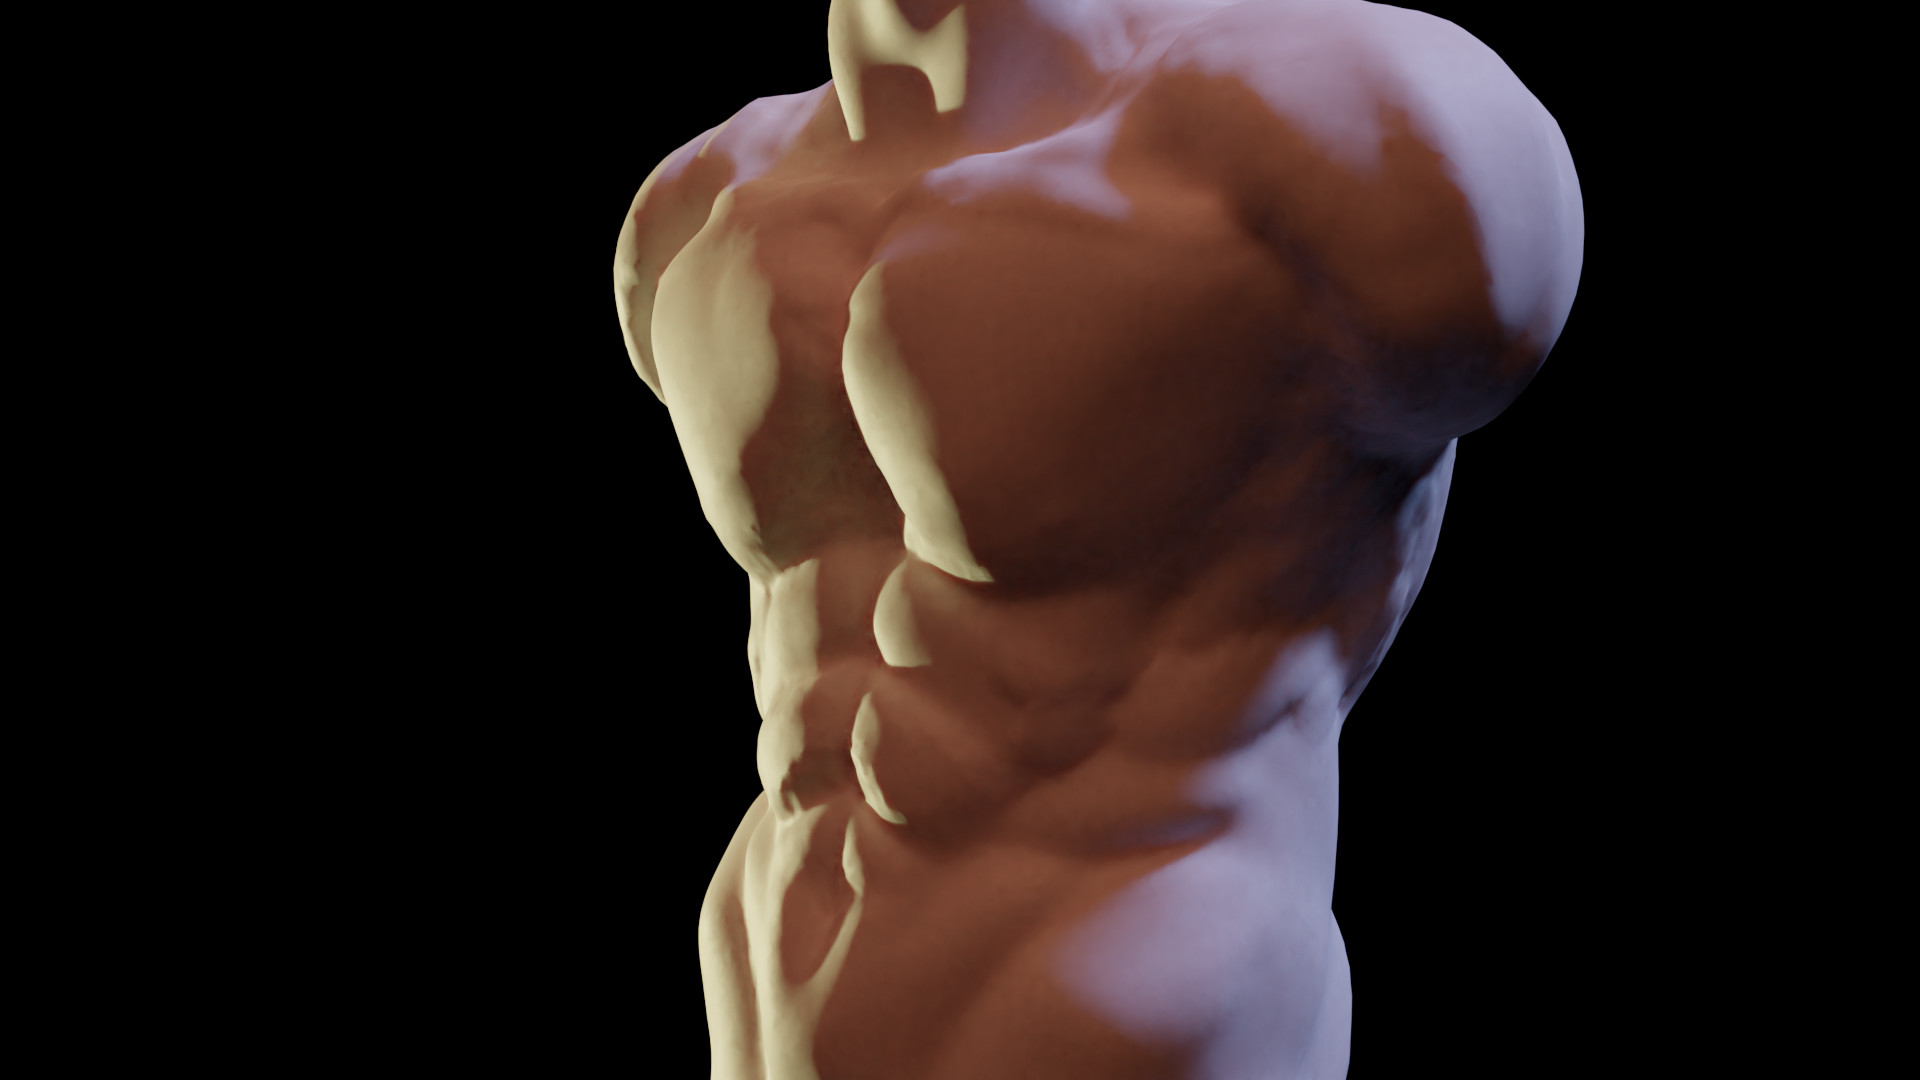 Quick sculpt during lunch. ~40mins